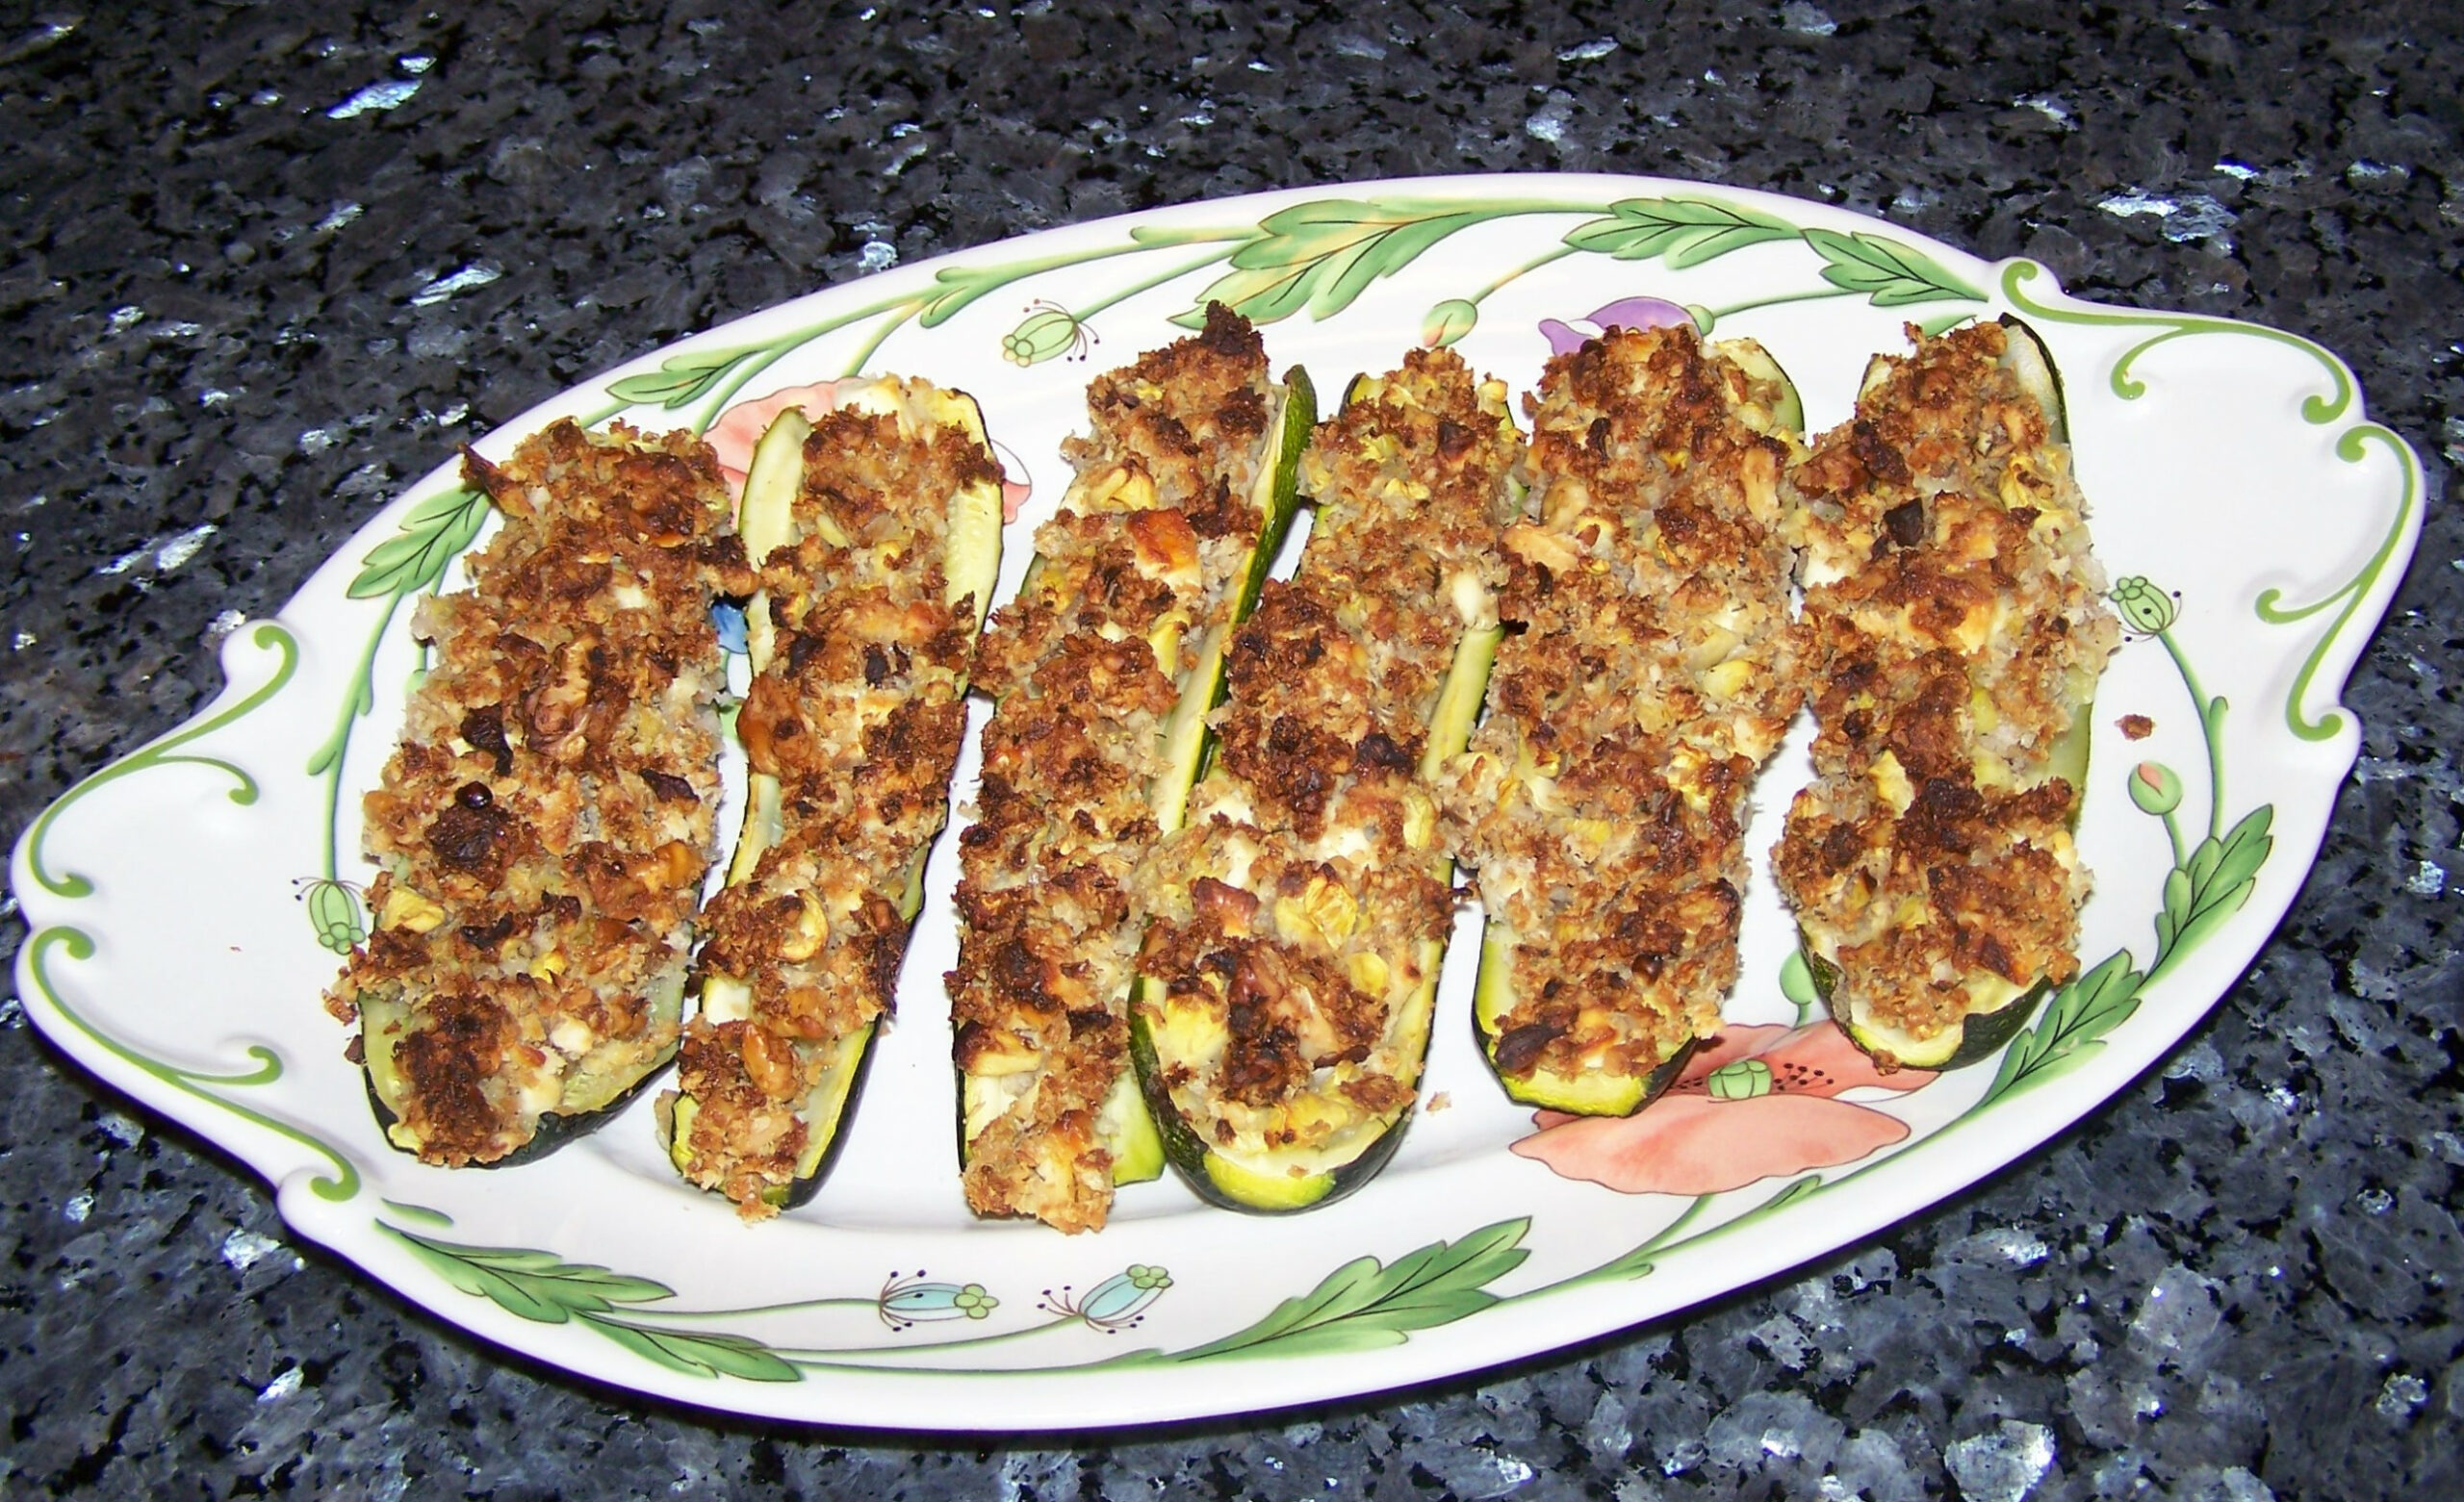 Recipe For Greek Stuffed Zucchini - Quick Cooking - Zucchini Recipes Vegetarian Main Dish